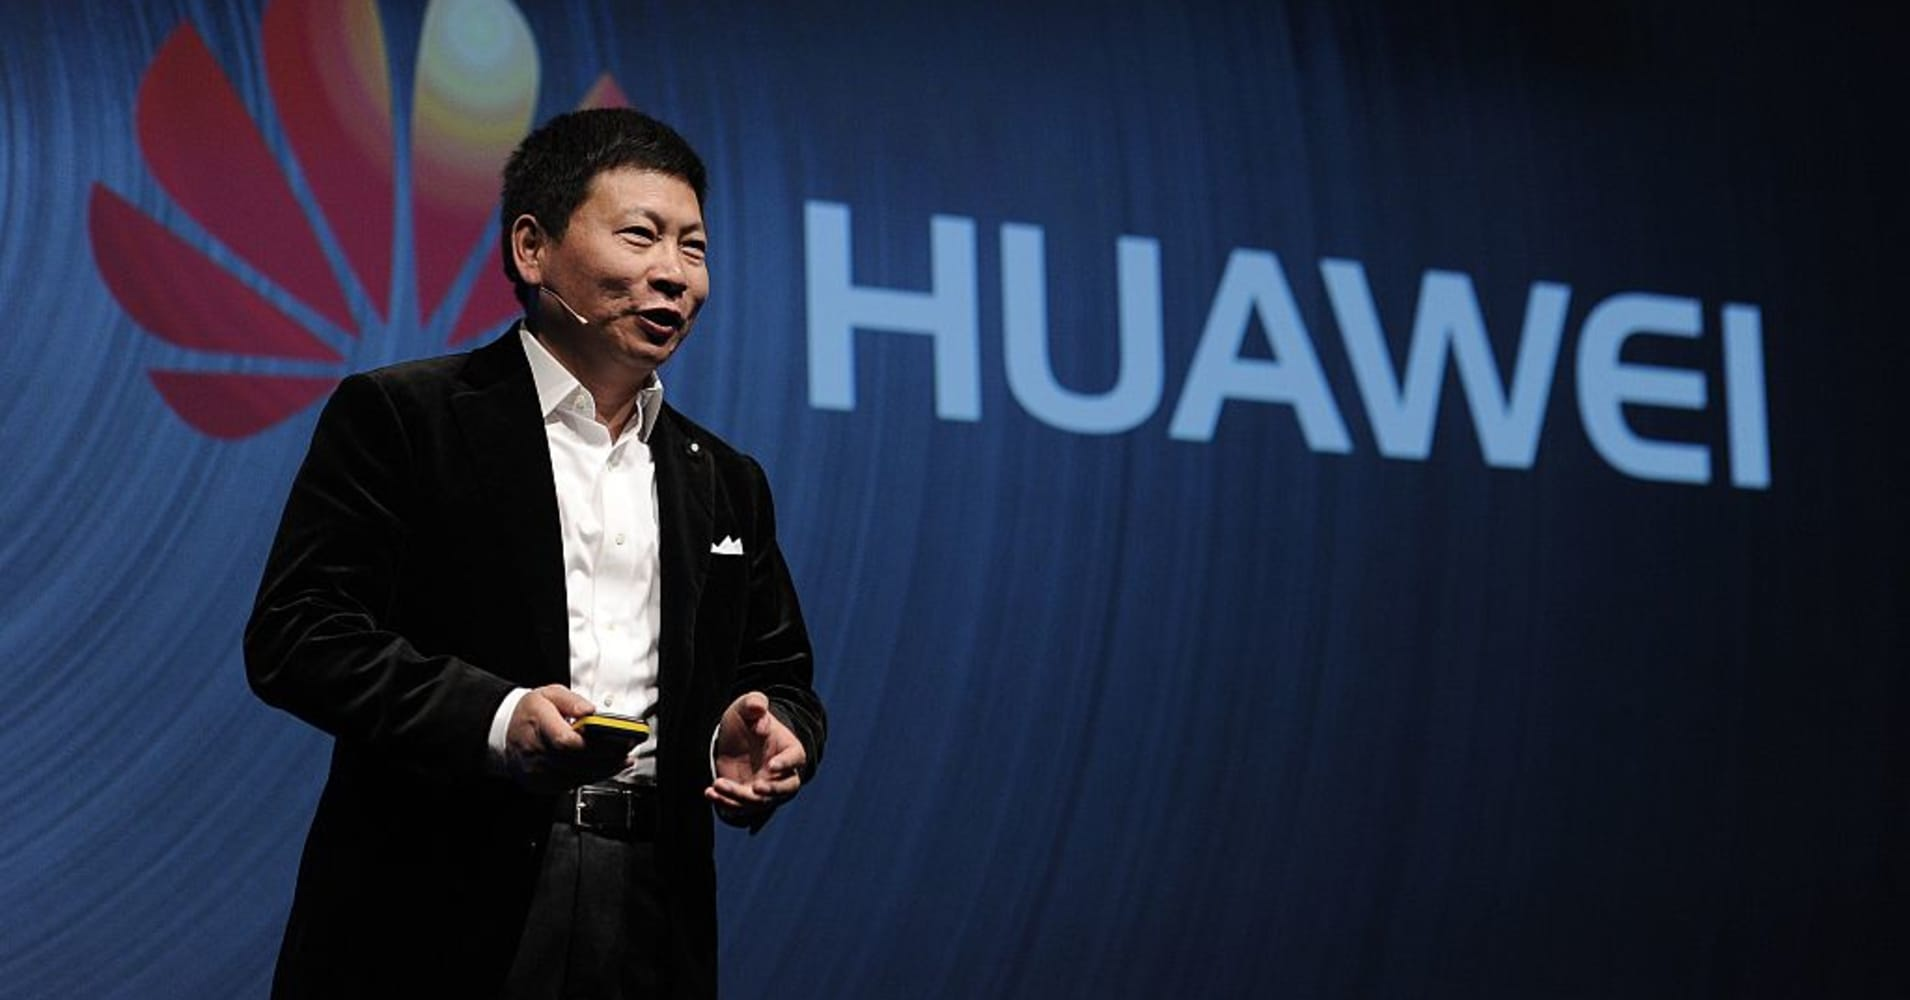 Huawei built software for smartphones and laptops in case it can't use Microsoft or Google products